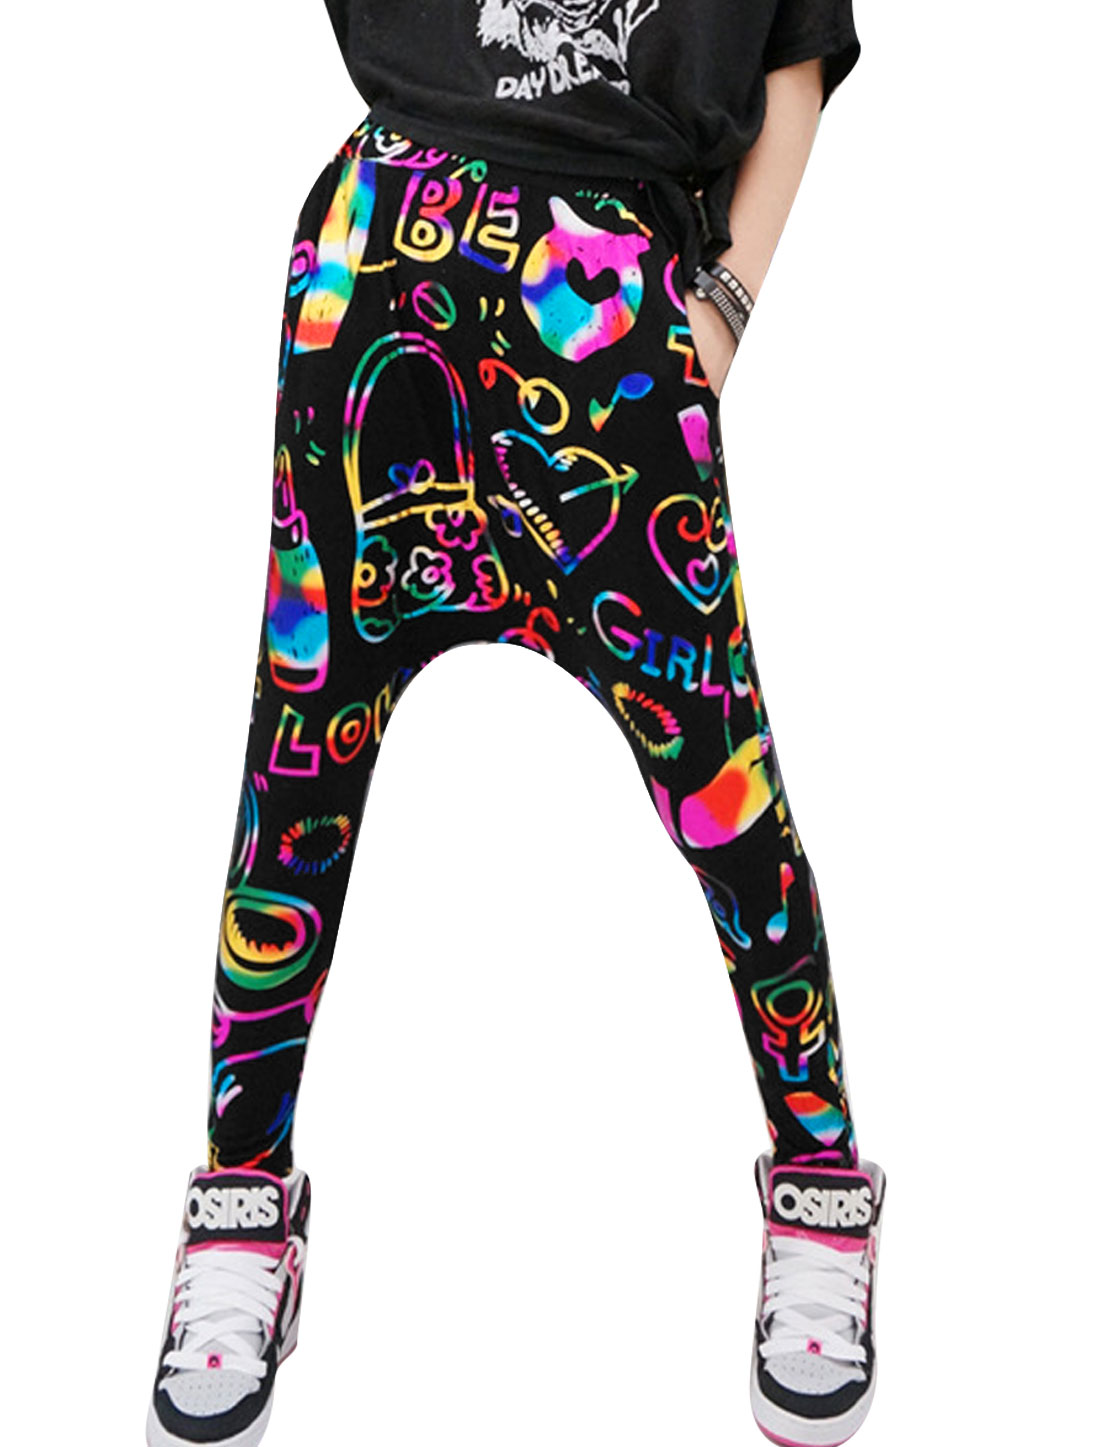 Lady Novelty Prints Stylish Leisure Harem Pants Fuchsia Black XS